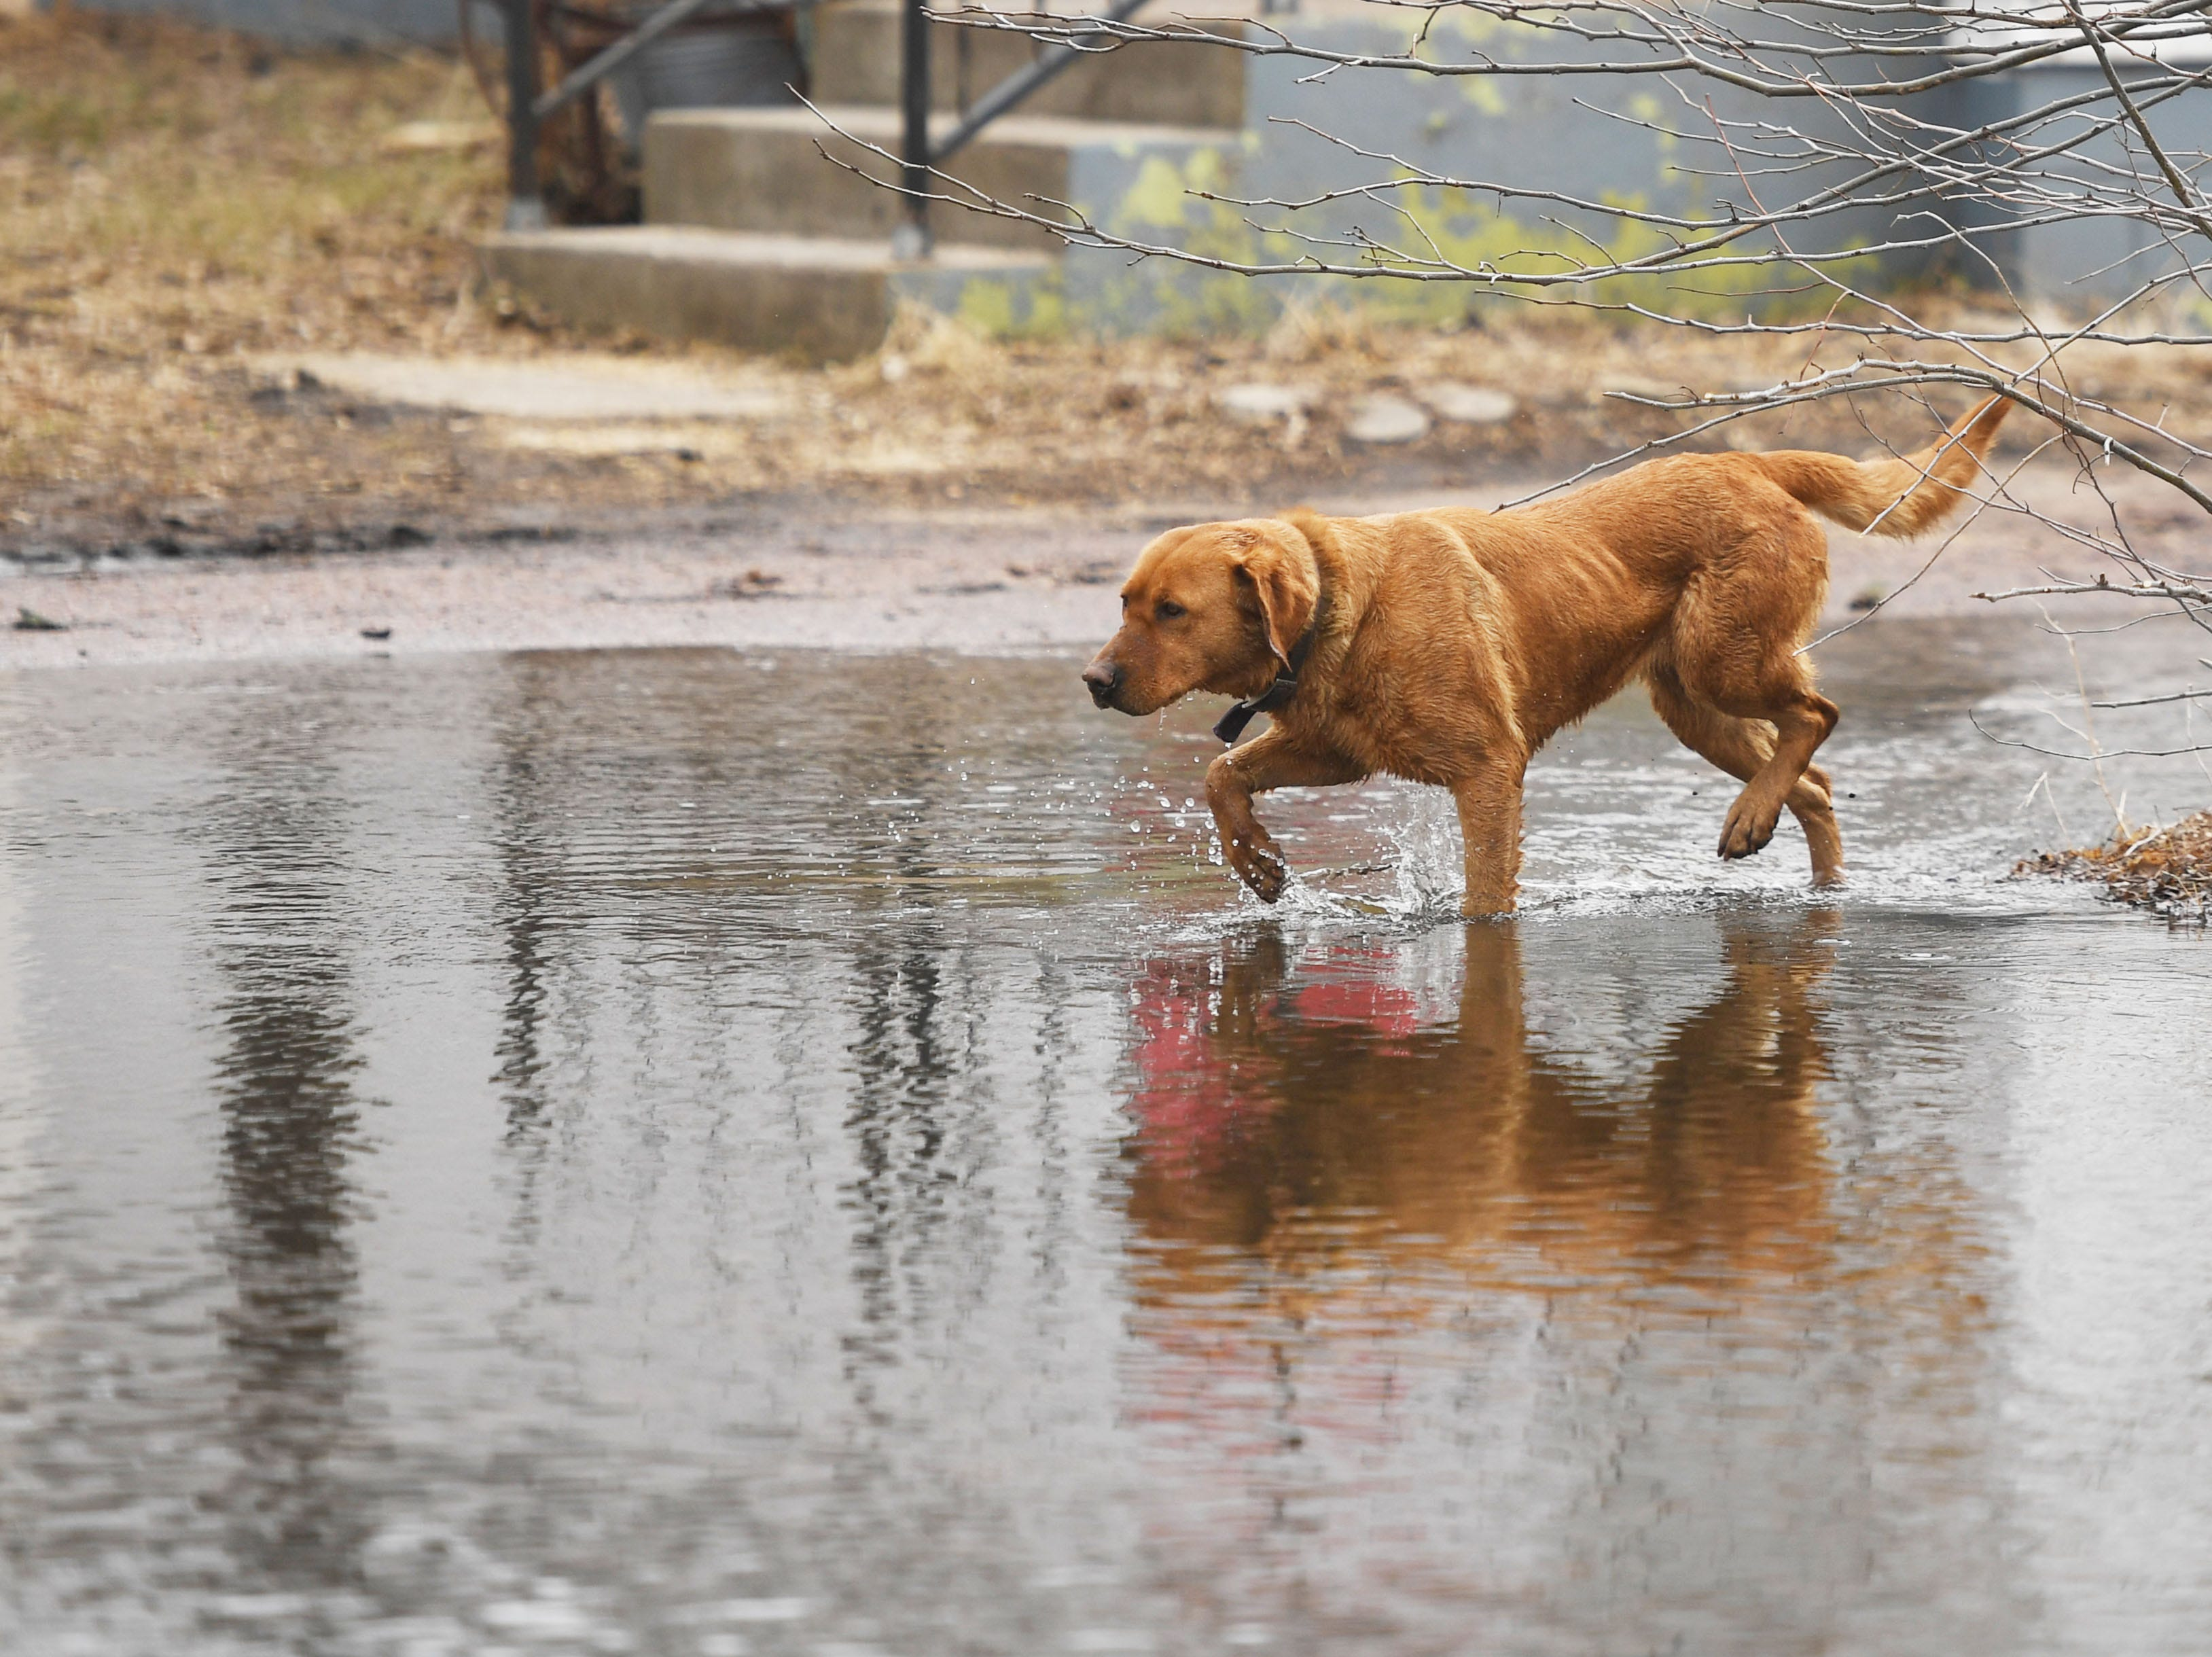 A dog tiptoes through flood waters in Renner Tuesday, March 26, in Renner, S.D. The latest river forecasts have the Big Sioux at Dell Rapids staying at 'major' flood level until early next week.